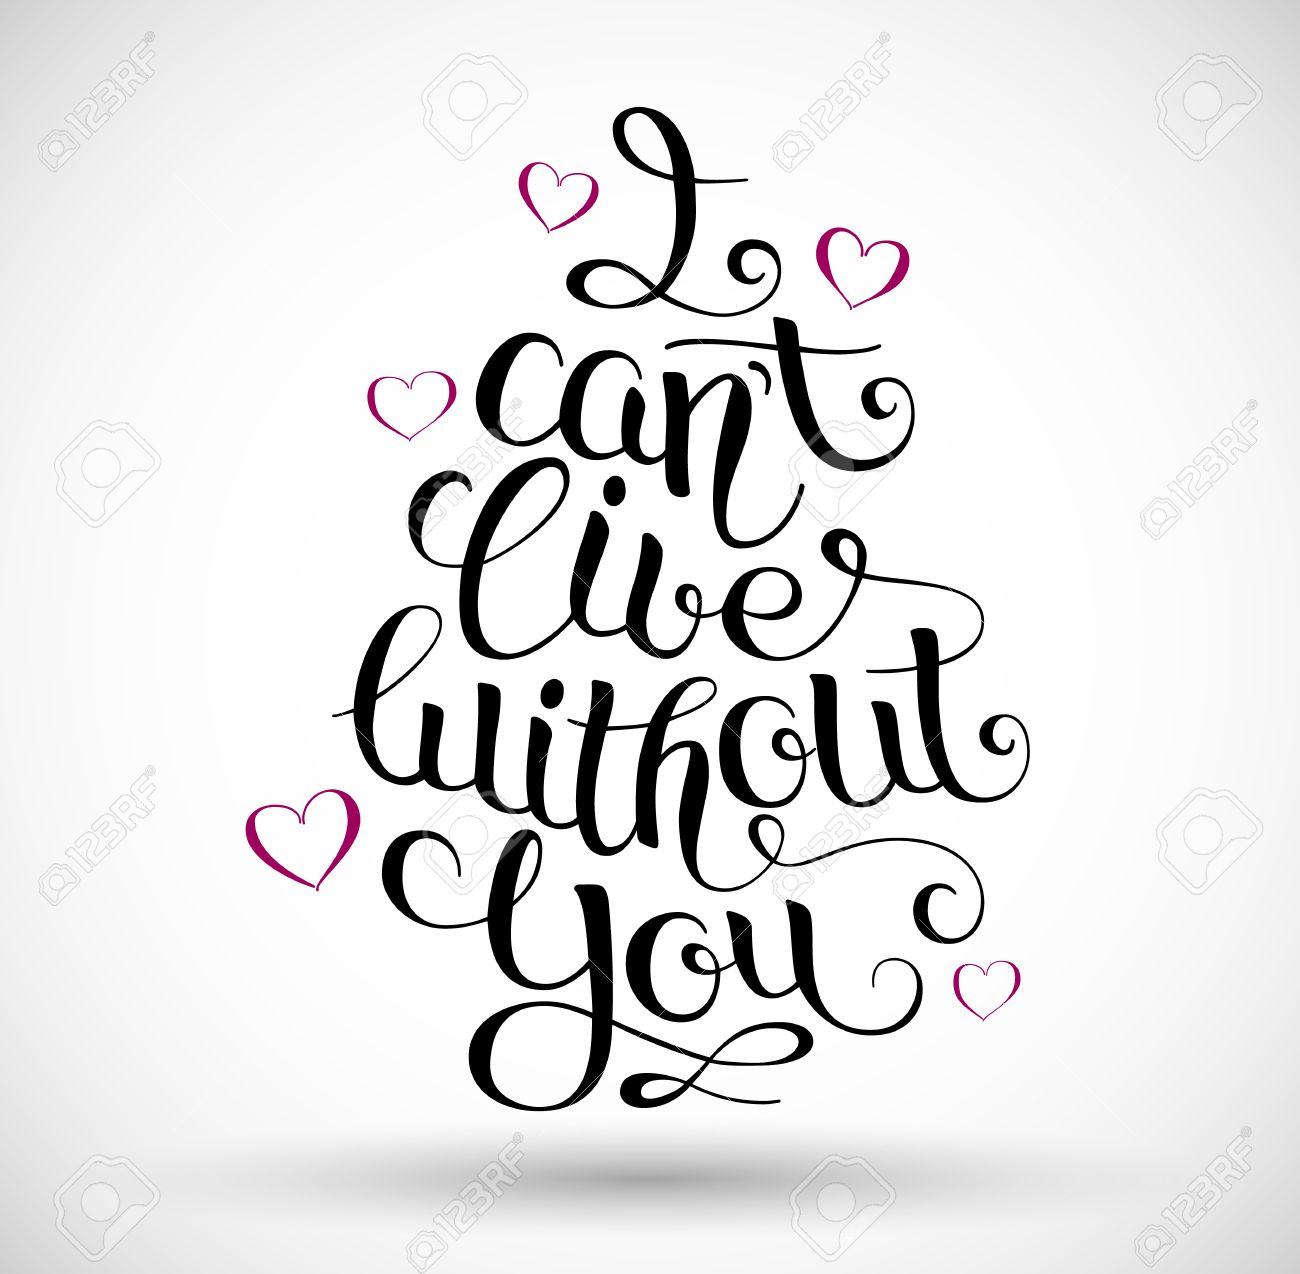 I Cant Live Without You Hand Written Lettering Royalty Free